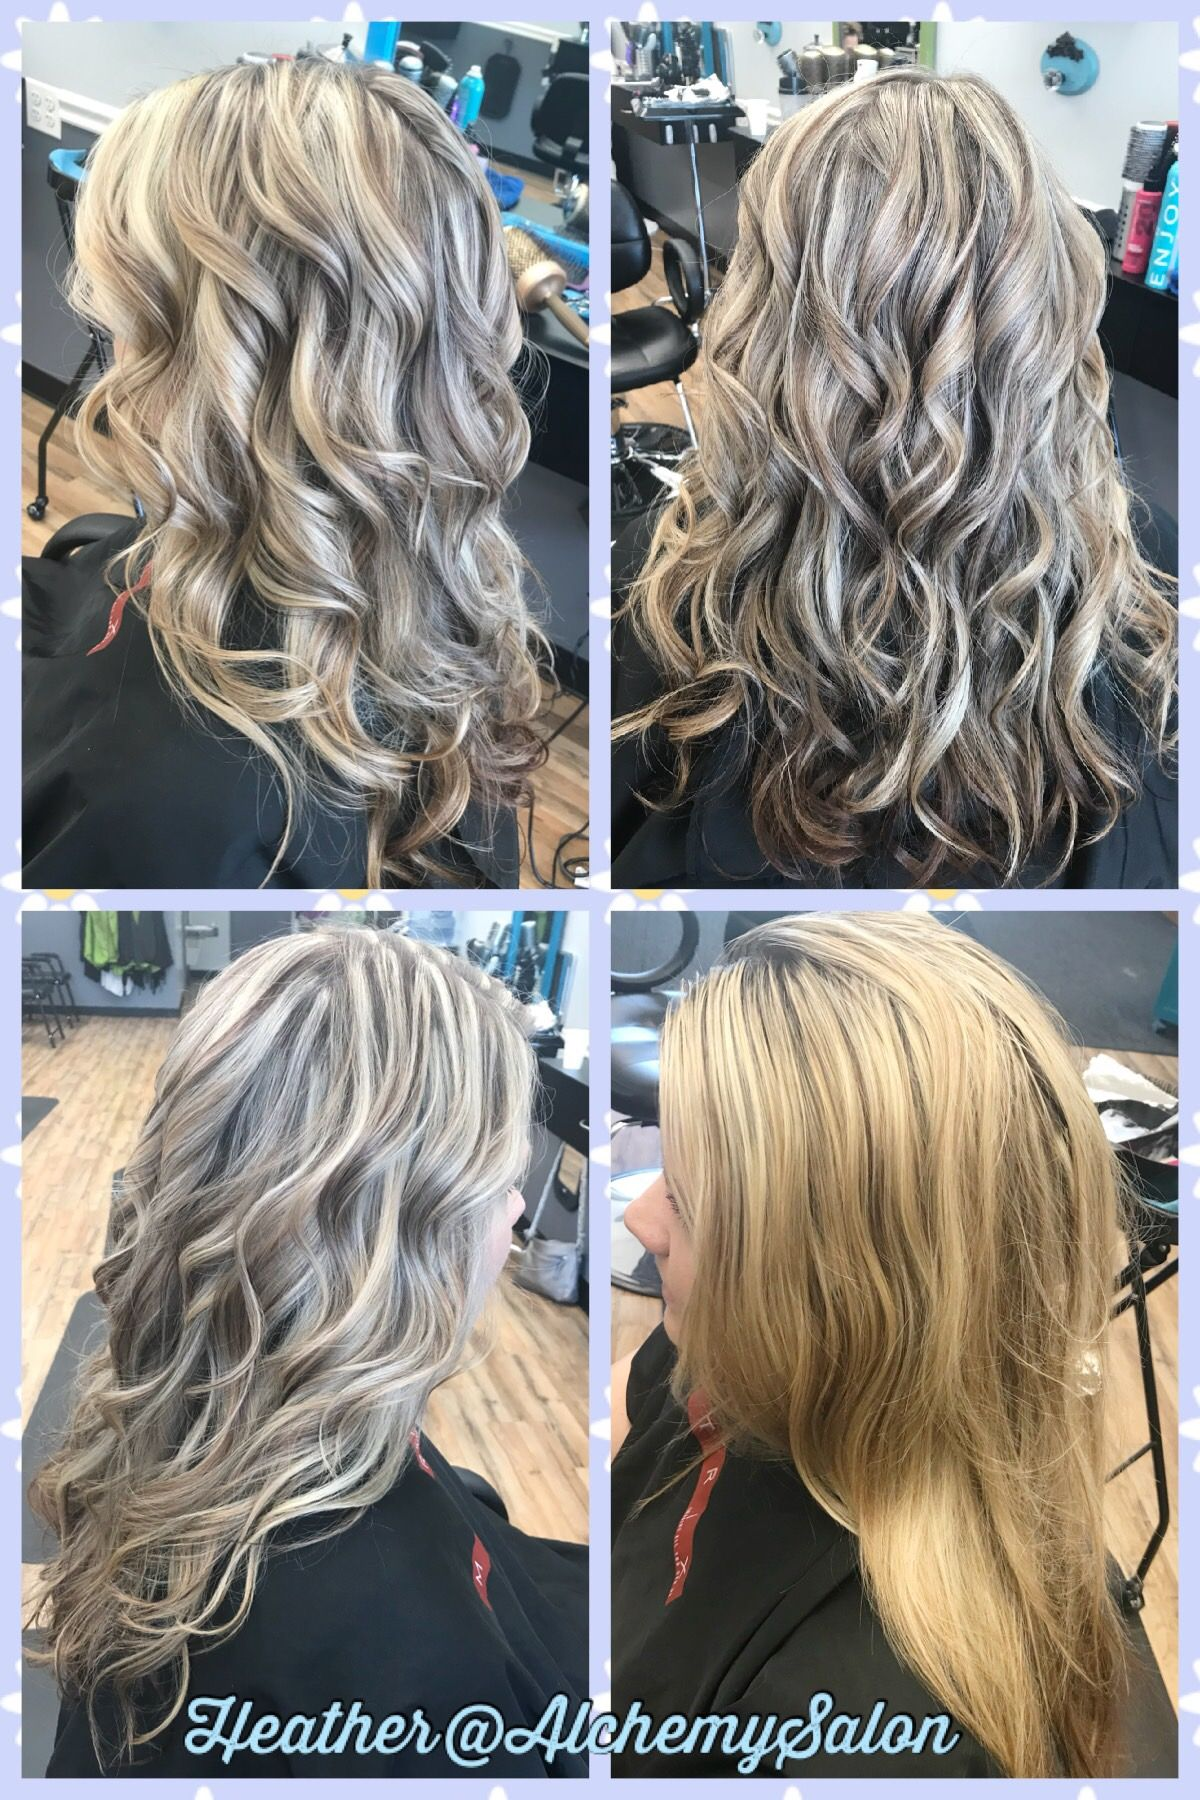 Platinum Blonde Highlights With Lowlights Long Hair Curls Before And After Blonde Highlights With Lowlights Curls For Long Hair Blonde Highlights